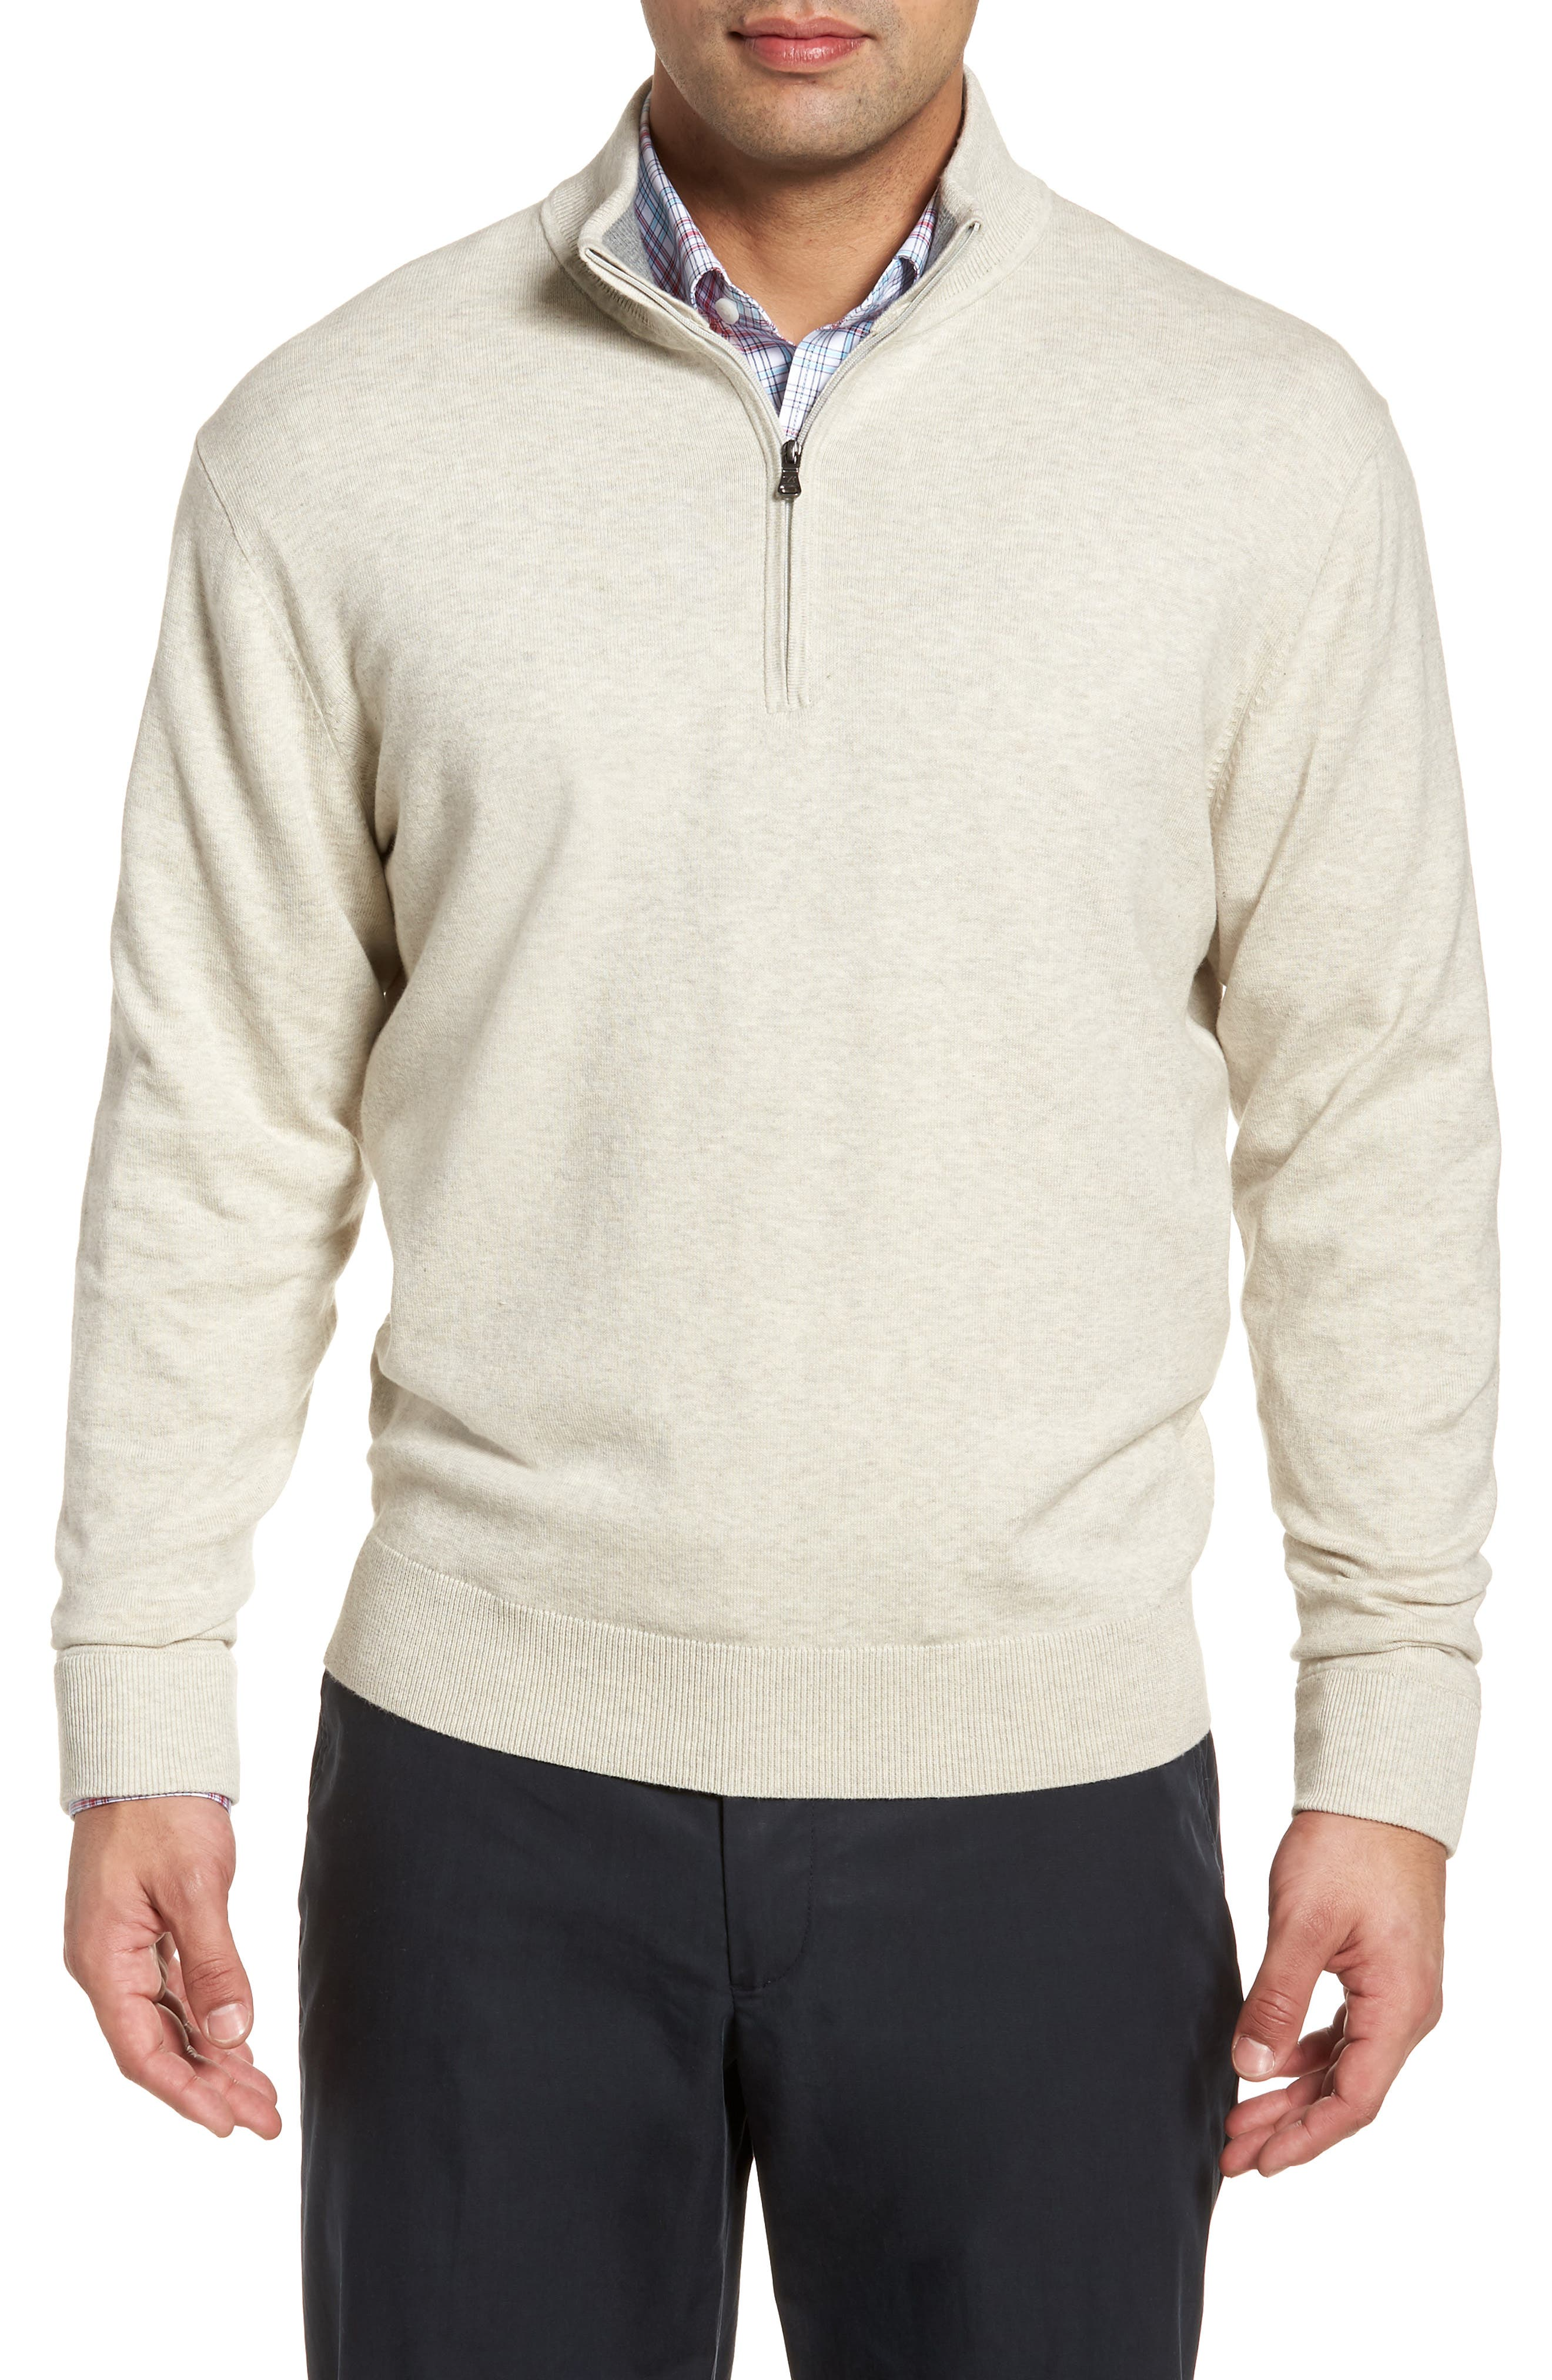 CUTTER & BUCK,                             Lakemont Classic Fit Quarter Zip Sweater,                             Main thumbnail 1, color,                             OATMEAL HEATHER